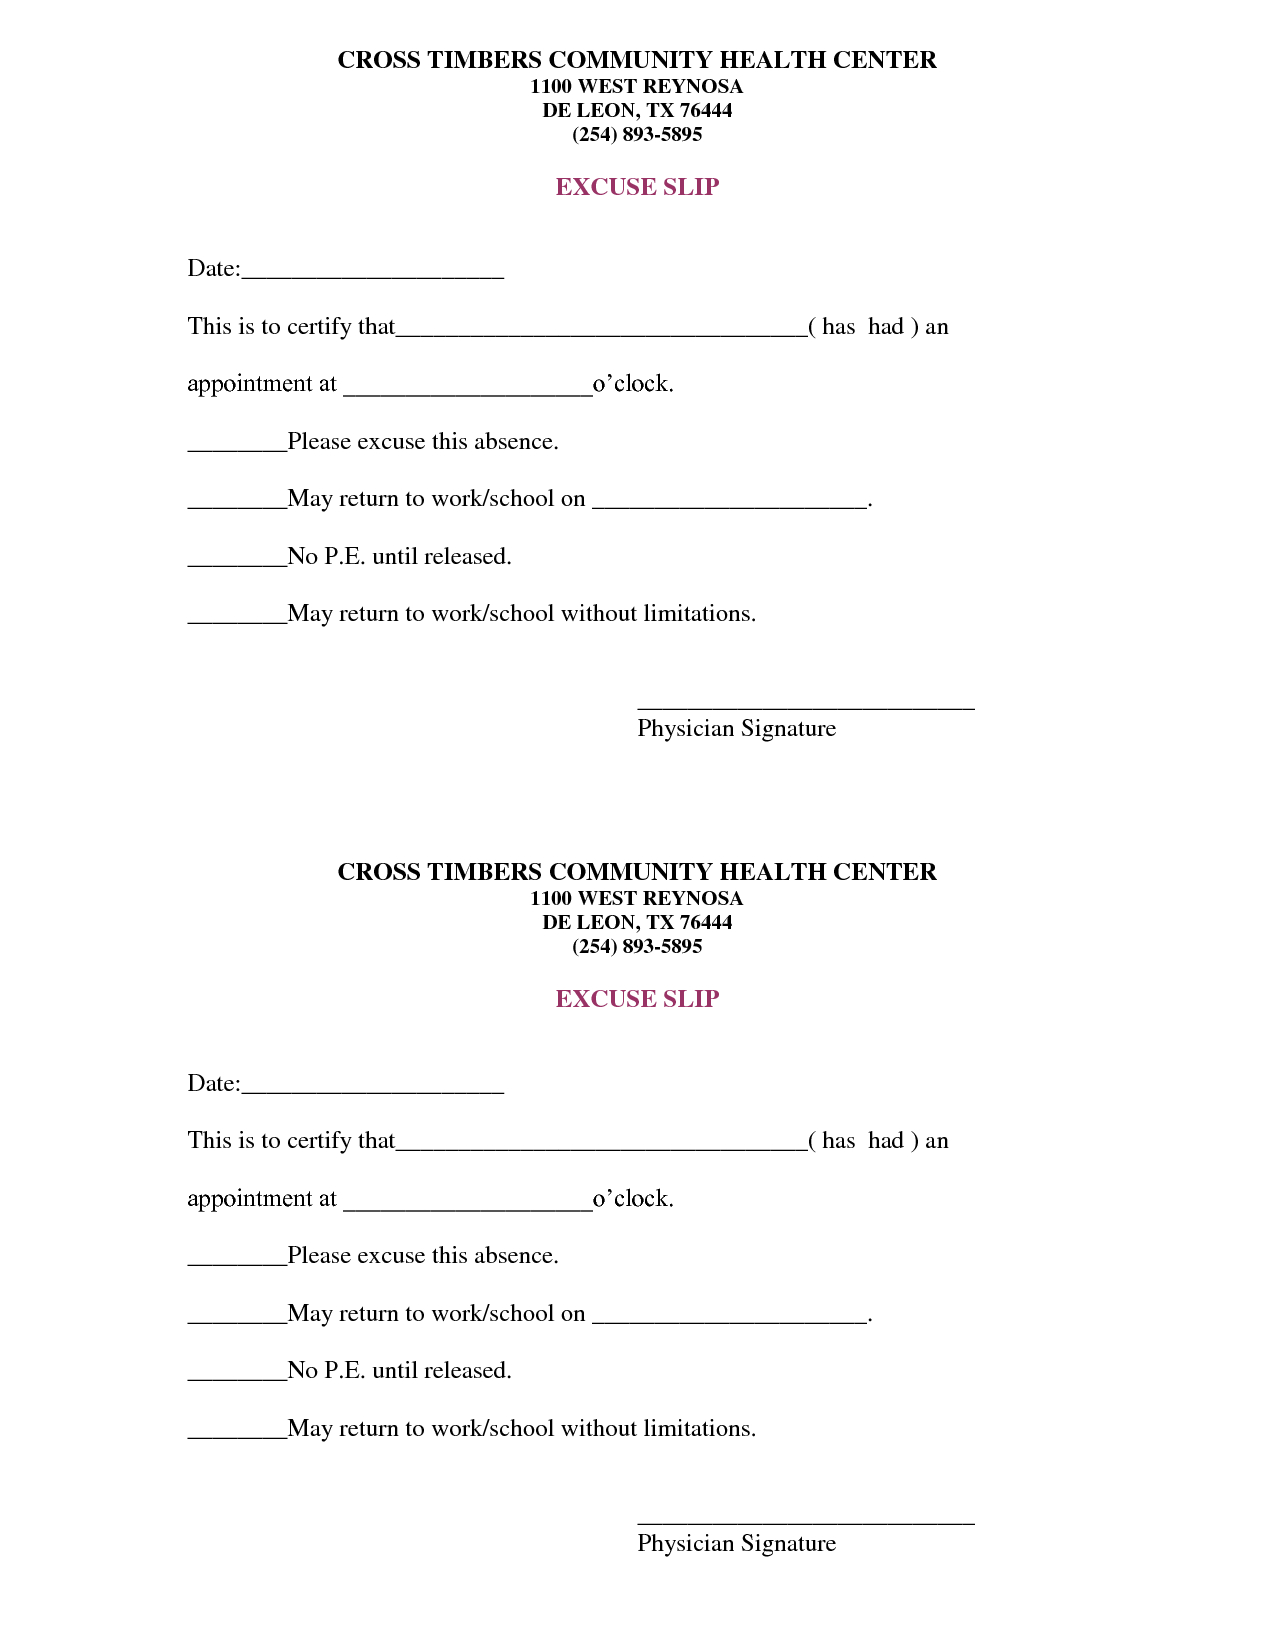 Free Doctors Note Template | Scope Of Work Template | On The Run - Free Printable Doctors Notes Templates